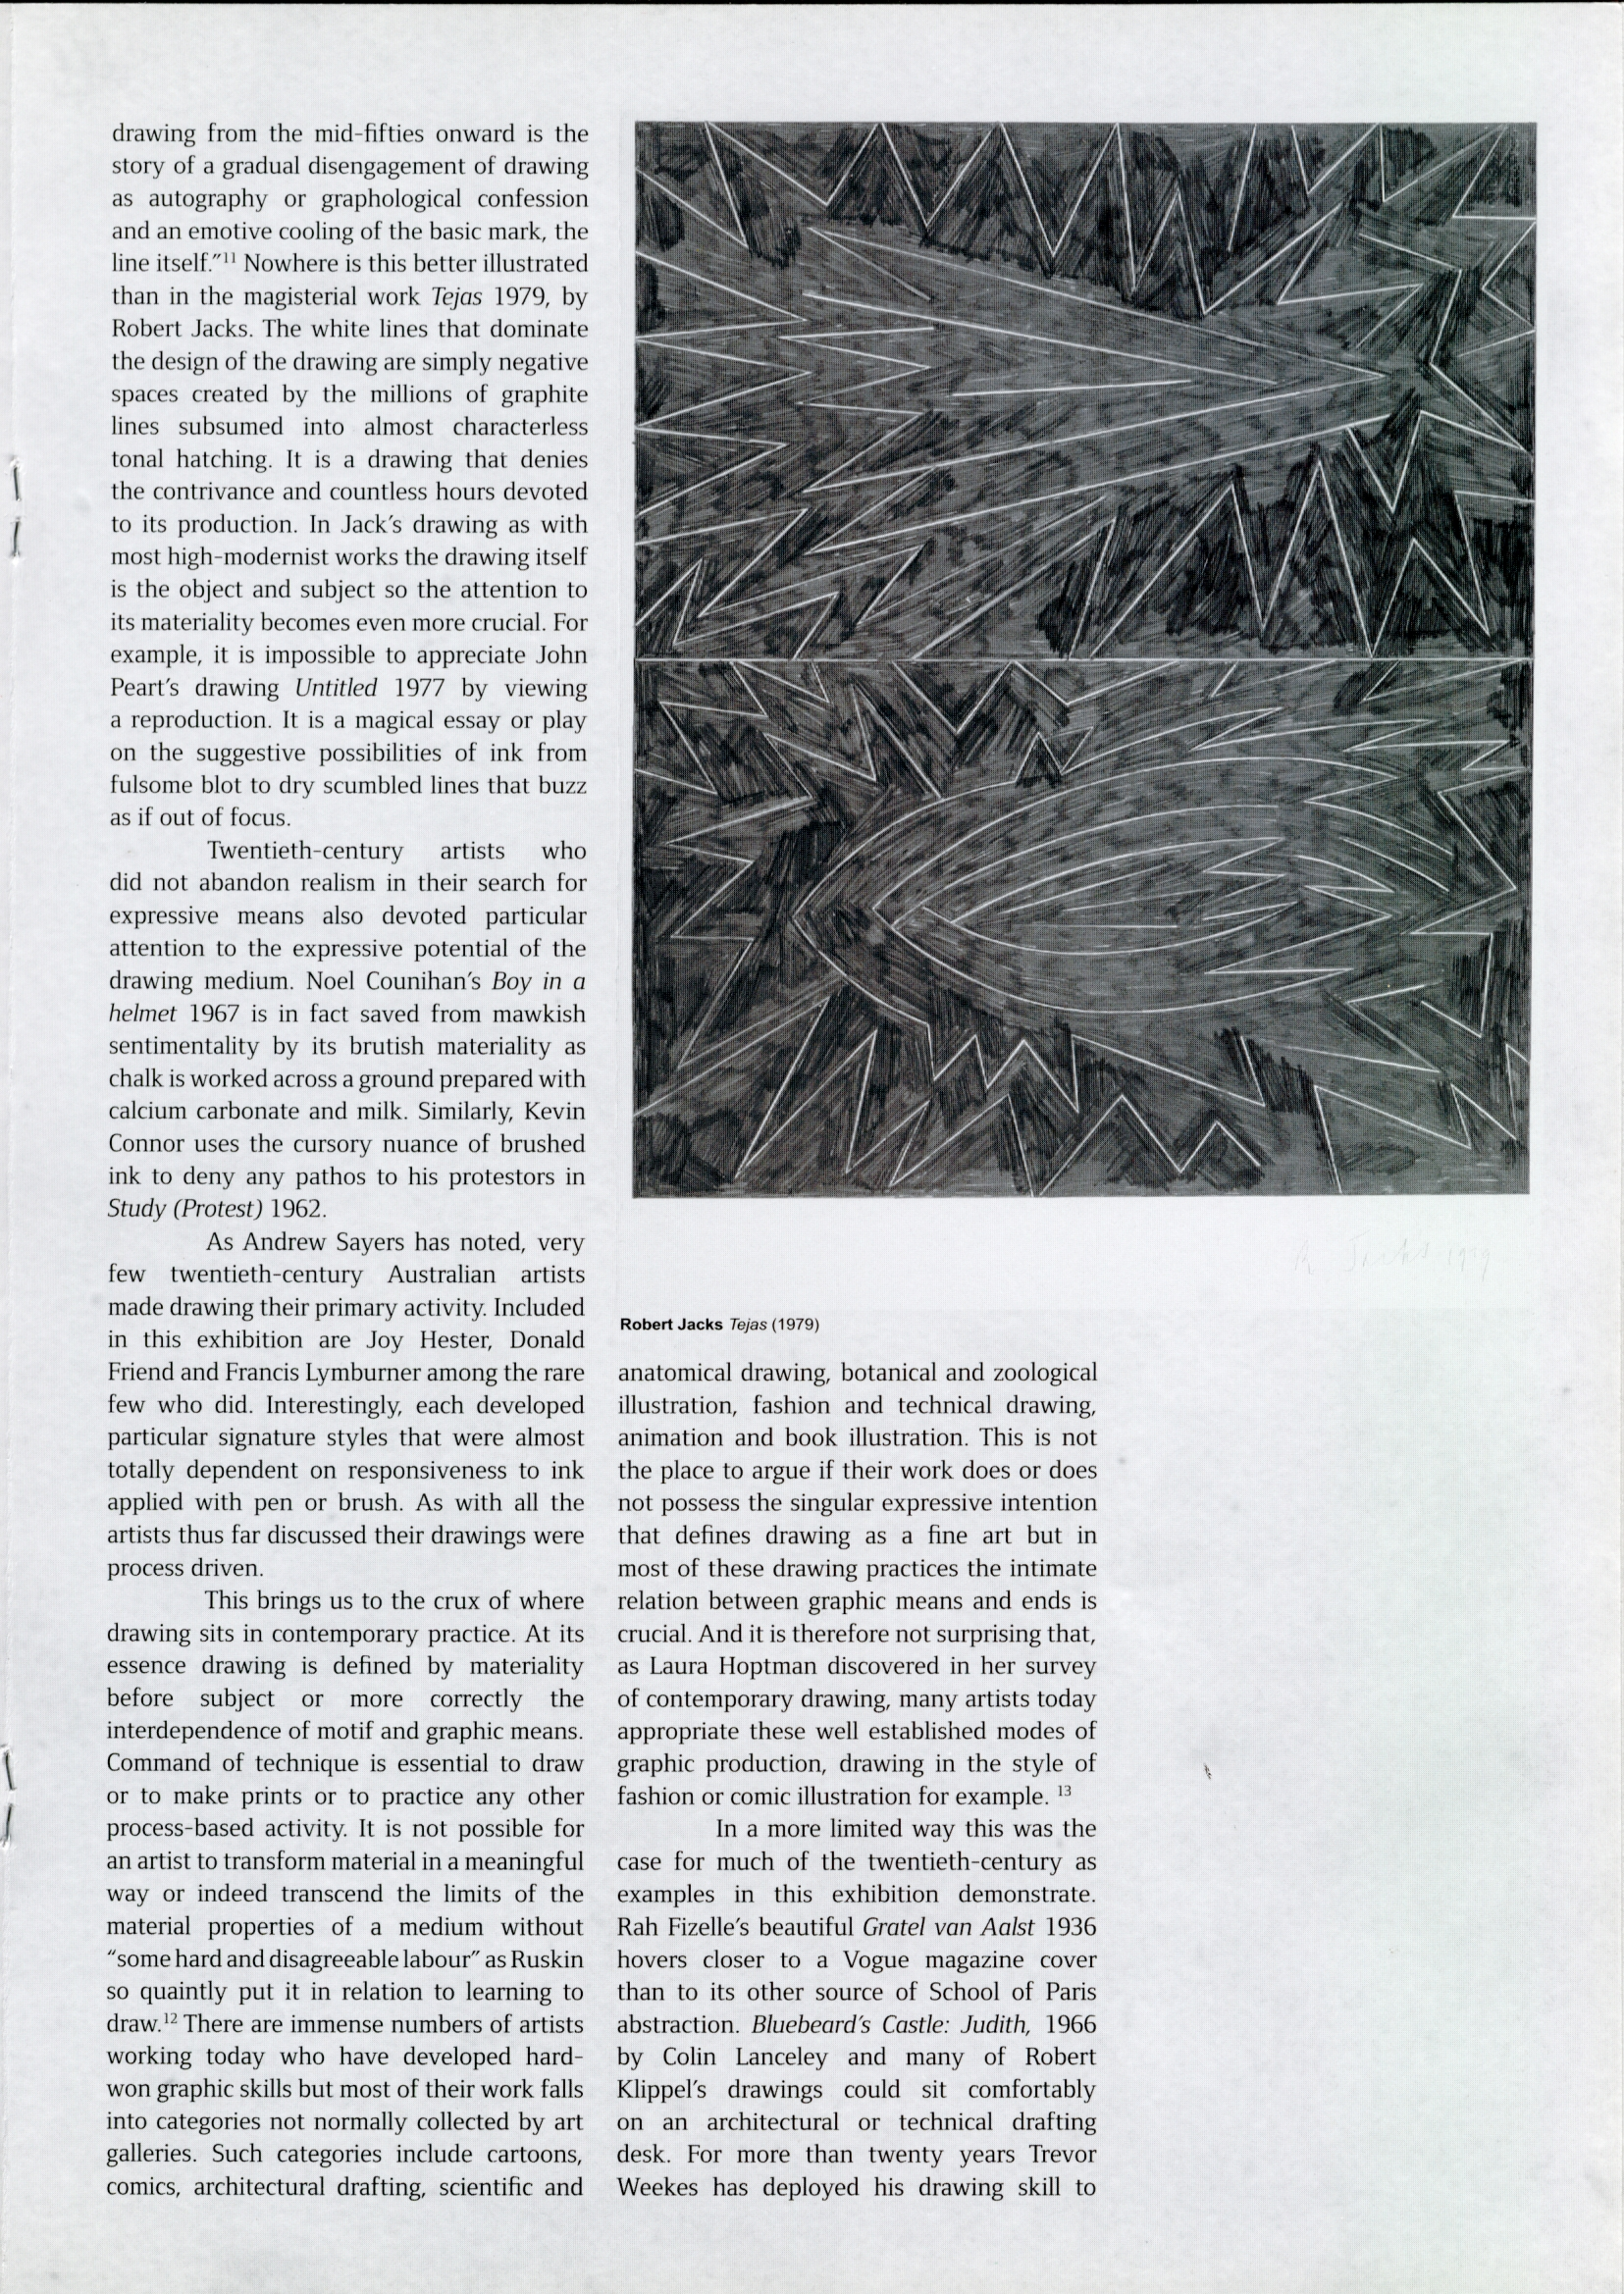 DrawingCentre-essay (1)_Page_5.jpg